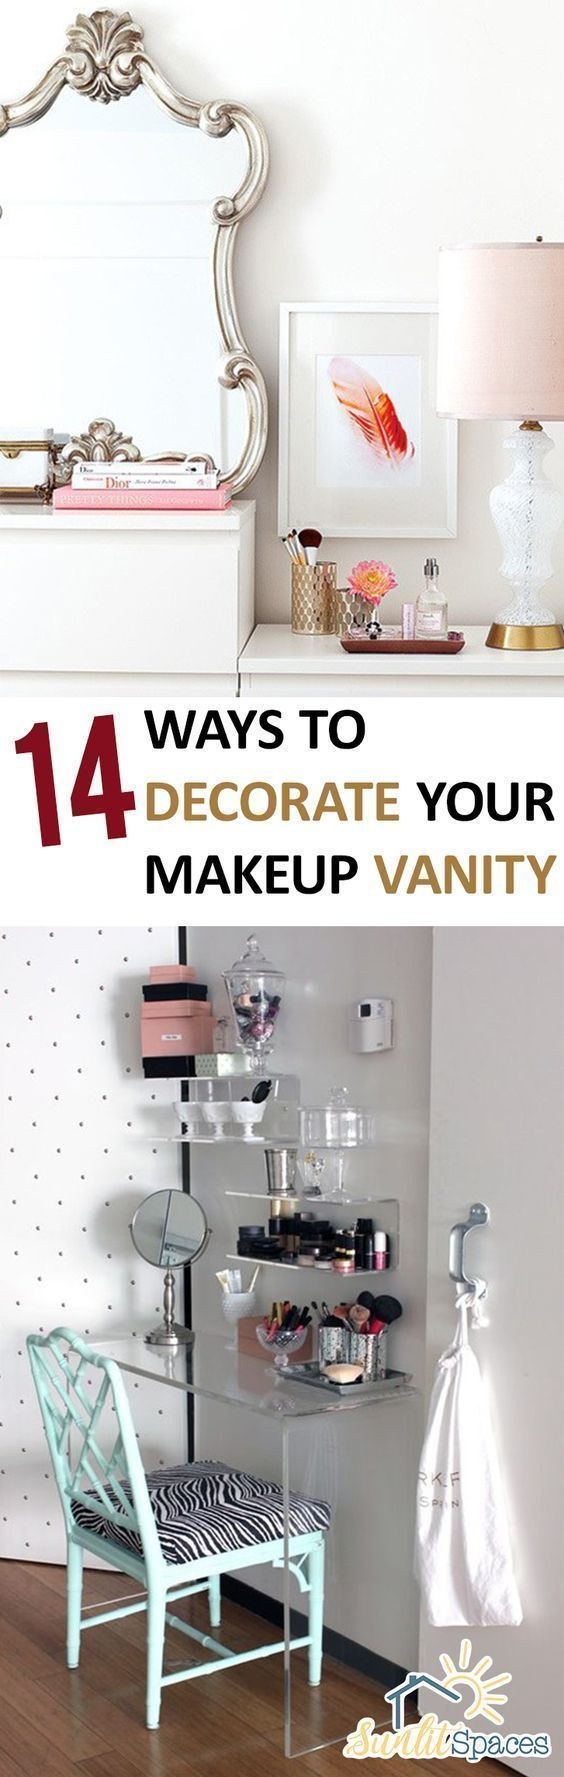 Makeup Vanity How to Decorate Your Makeup Vanity Home Decor Ideas DIY Makeup Vanity Makeup Vanity Ideas Makeup Tips and Tricks Decorating Bathroom Decor Popular Pin #makeupideas #homedecortips